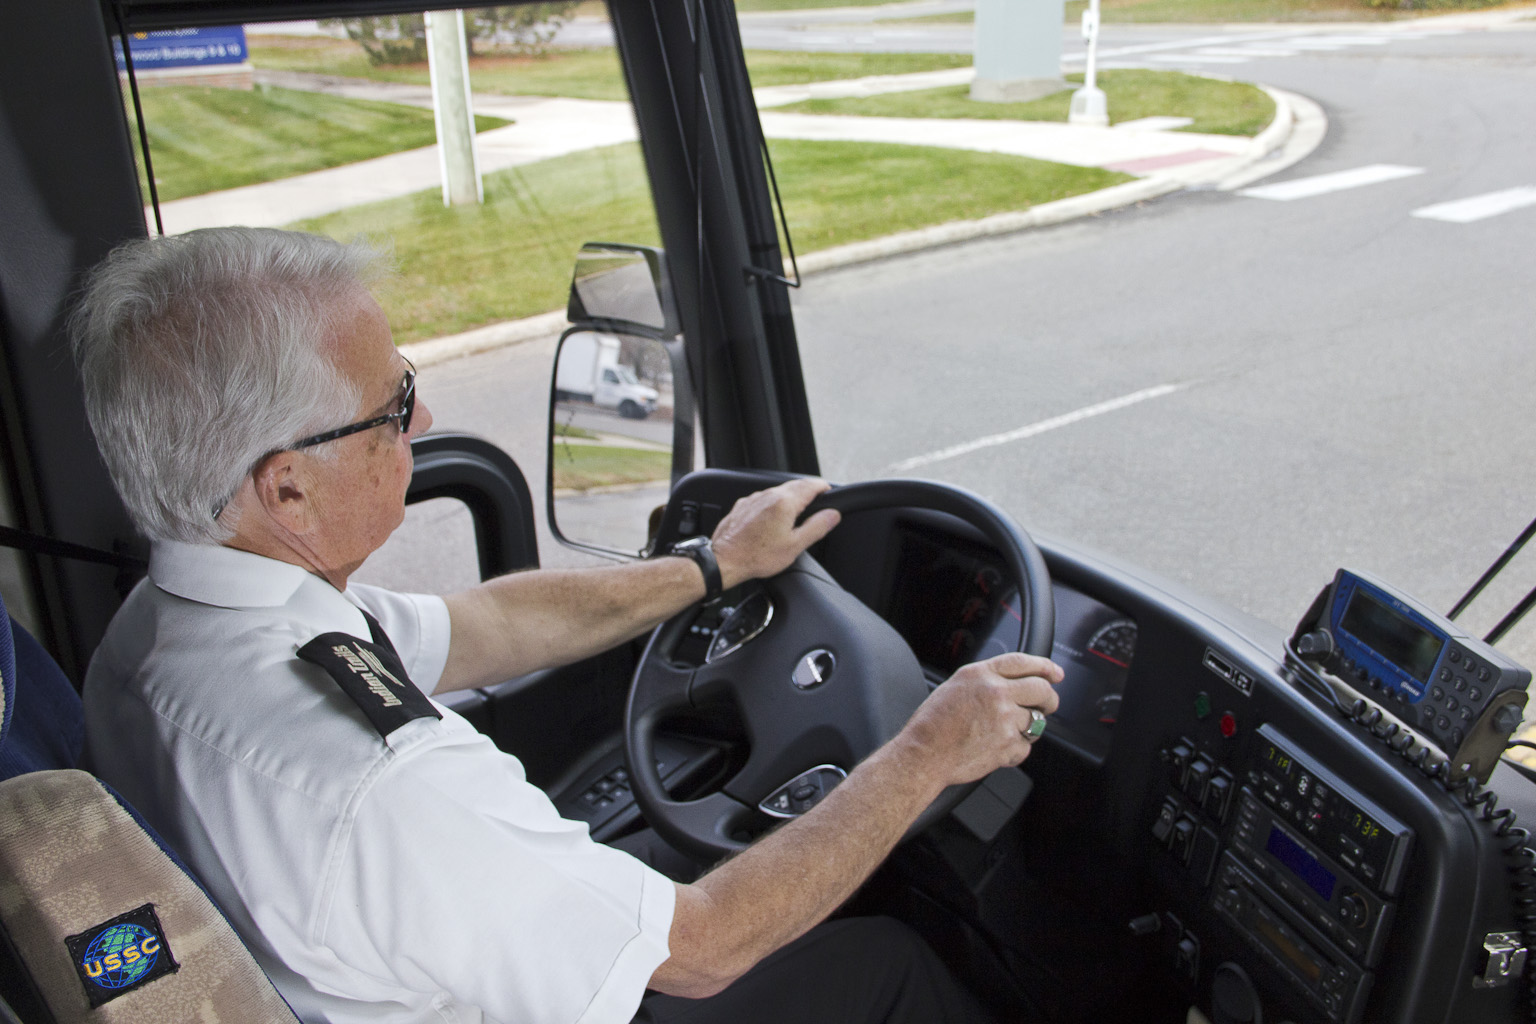 Companies Hiring Drivers May Be Looking for a Few Gray Hairs